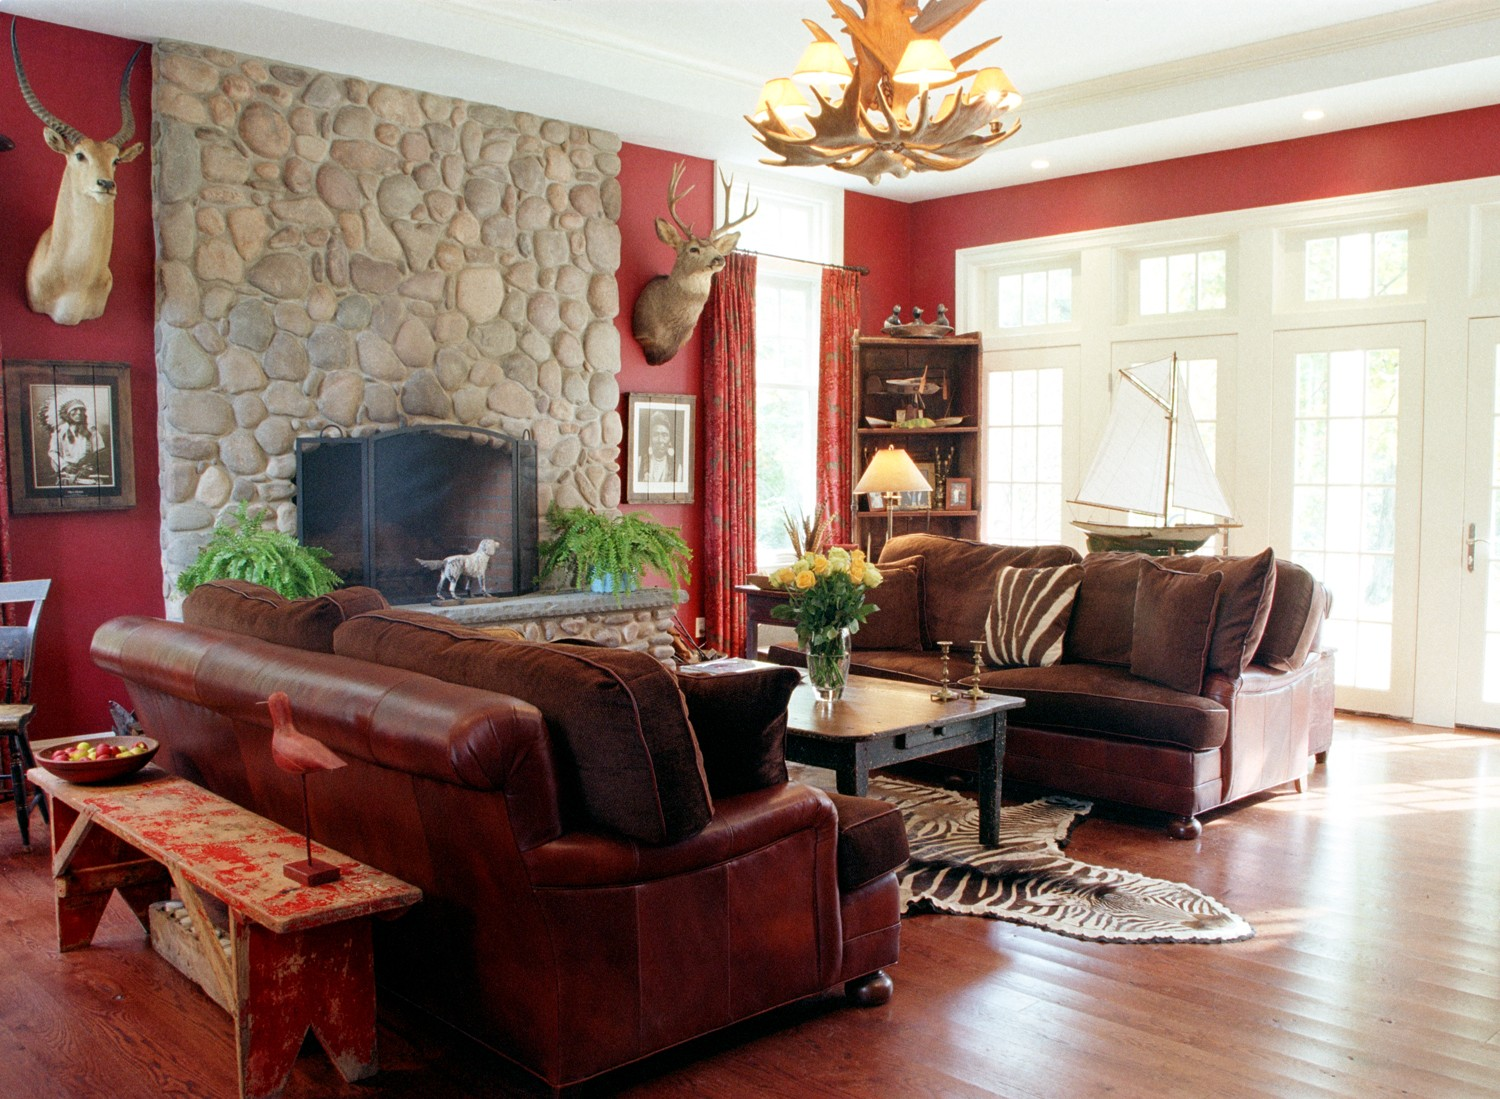 Inspiring Sitting Room Decor Ideas For Inviting And Cozy